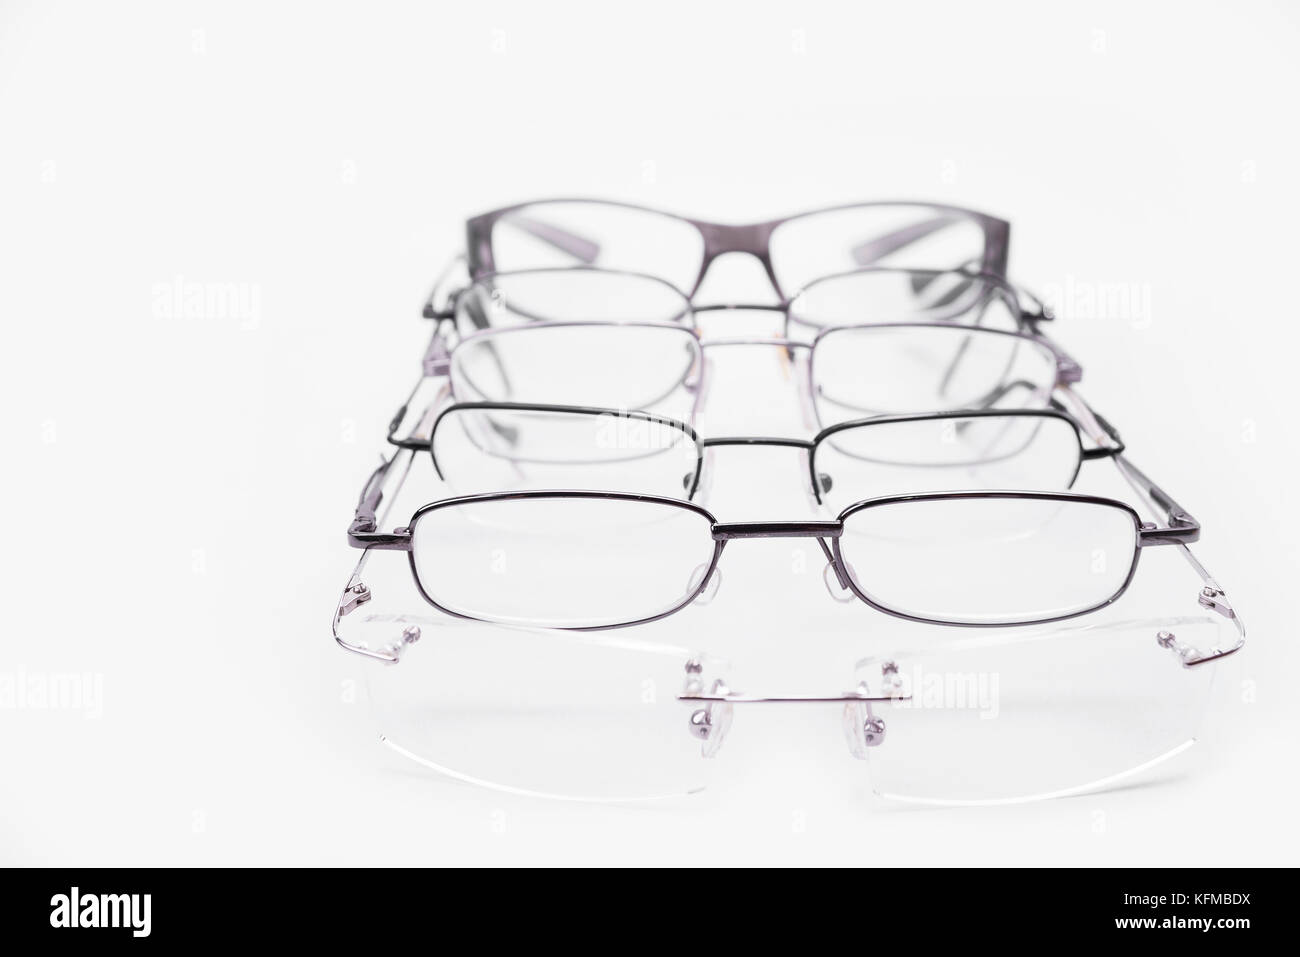 a3bc9bff23 Metal and rimless frames for dioptrical glasses or sunglasses Stock ...